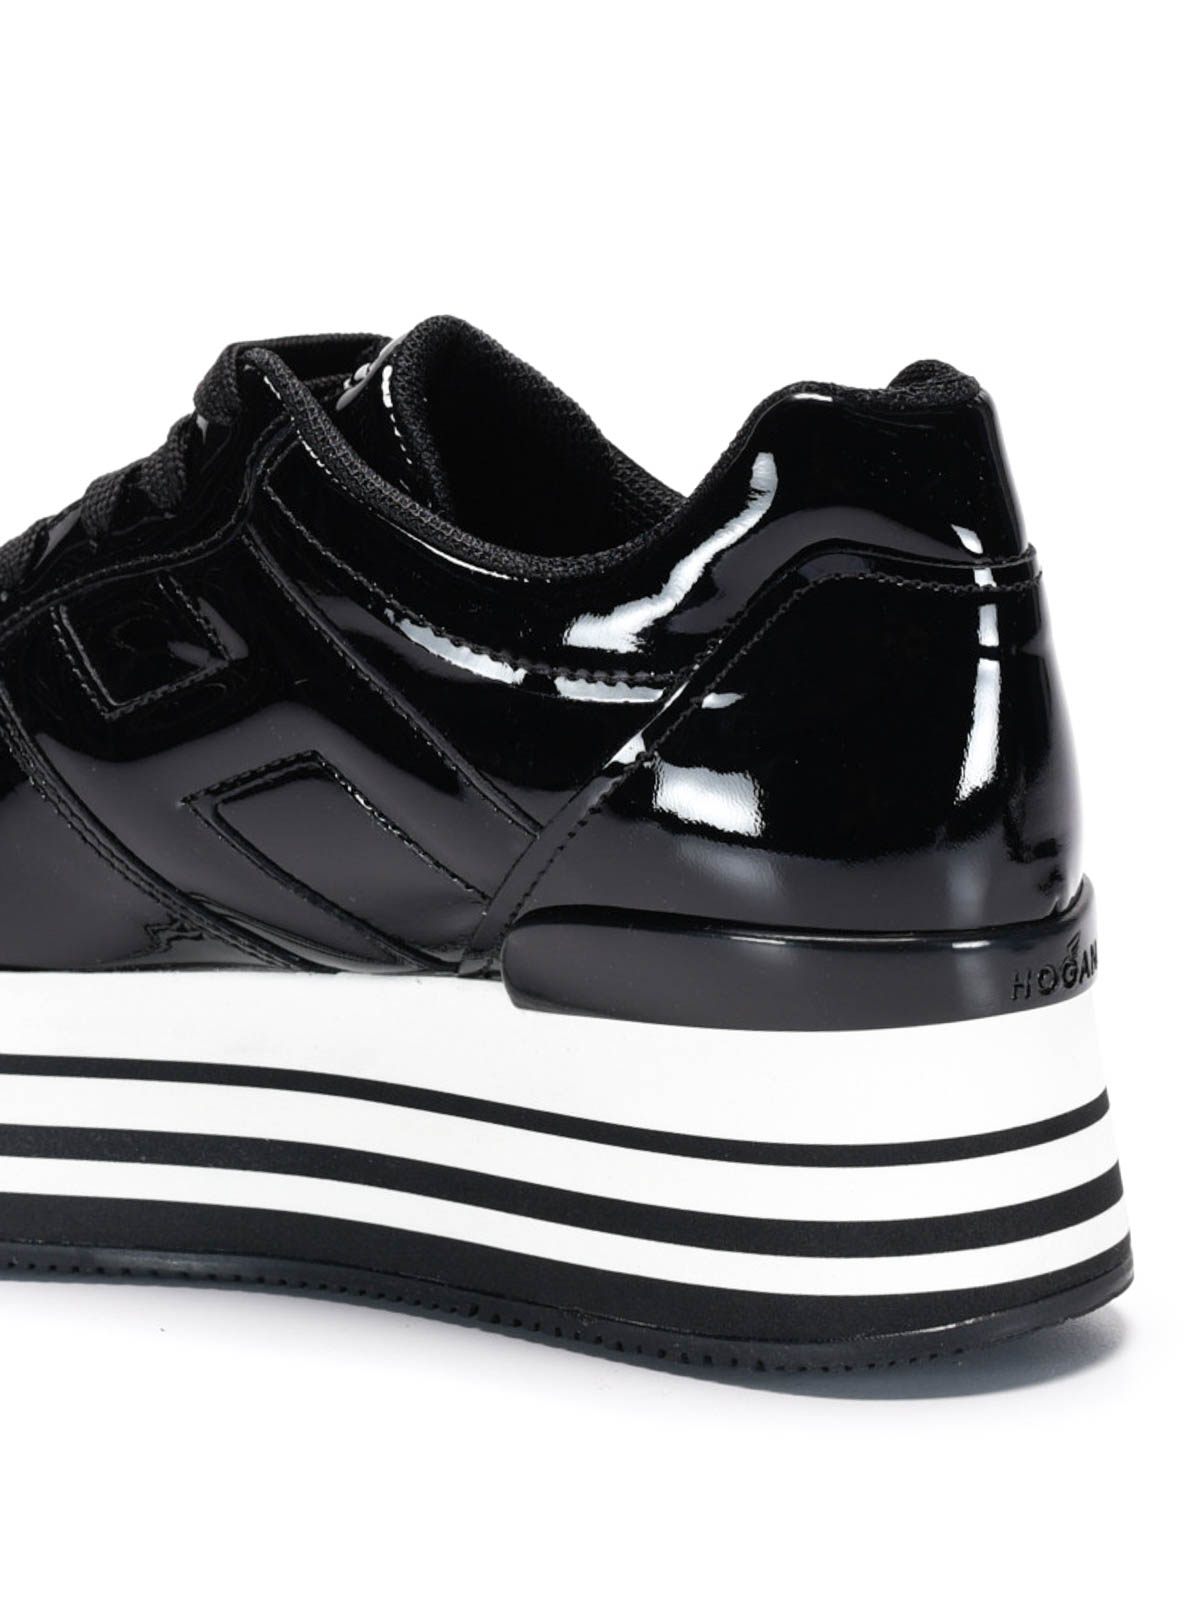 Trainers Hogan - Maxi 222 patent leather sneakers - GYW2830T541OW0B999